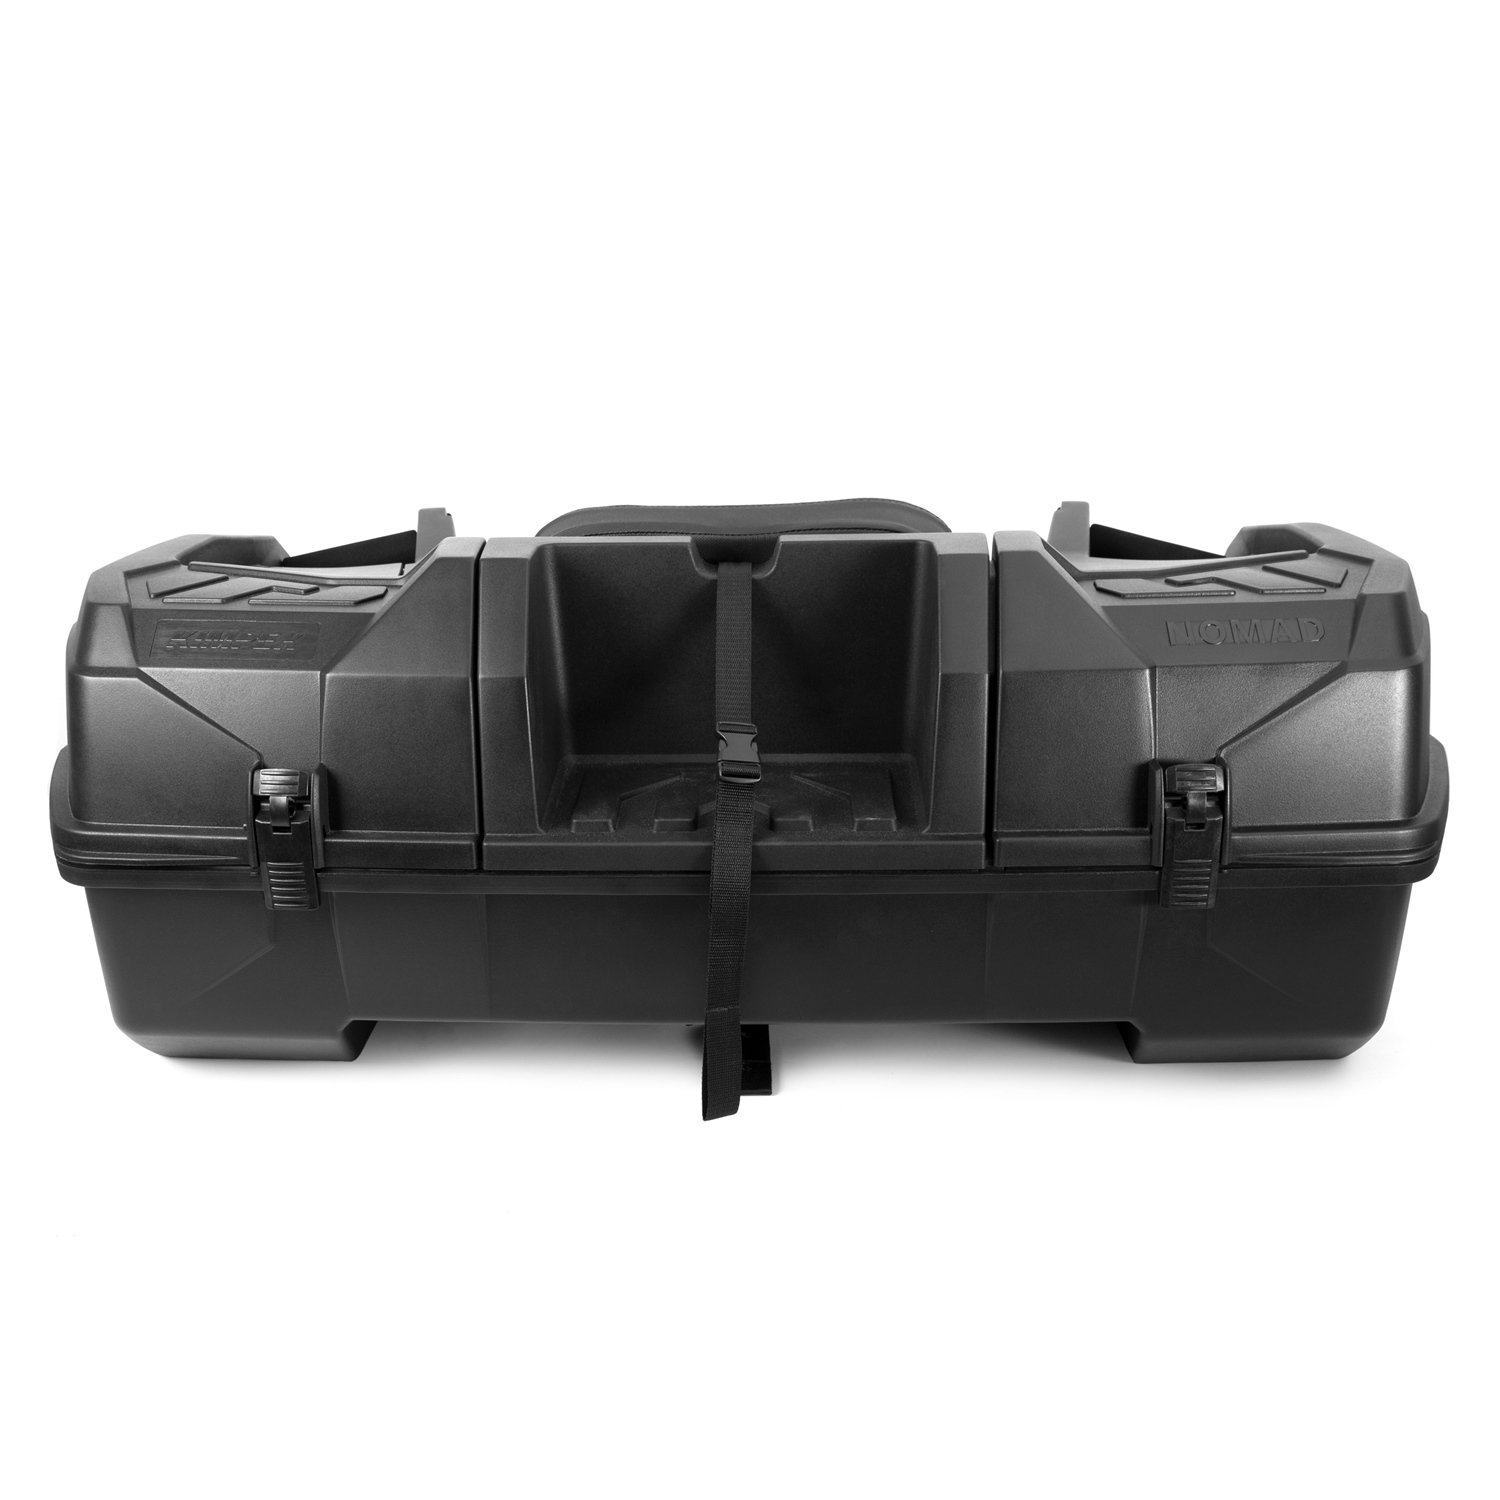 Kimpex NOMAD Trunk Rear by Kimpex (Image #3)